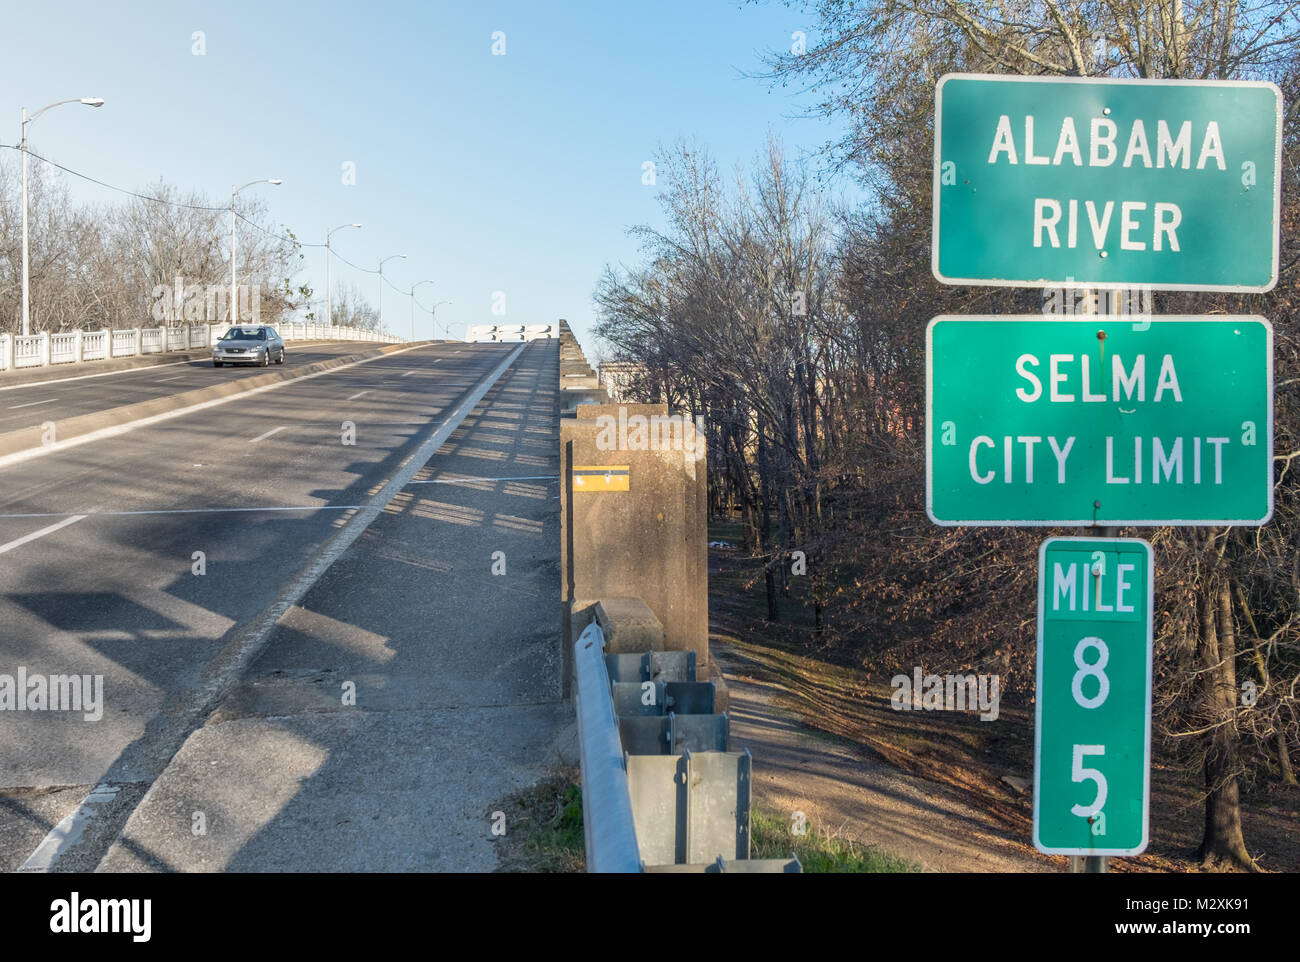 Highway sign for Selma city limits - Stock Image